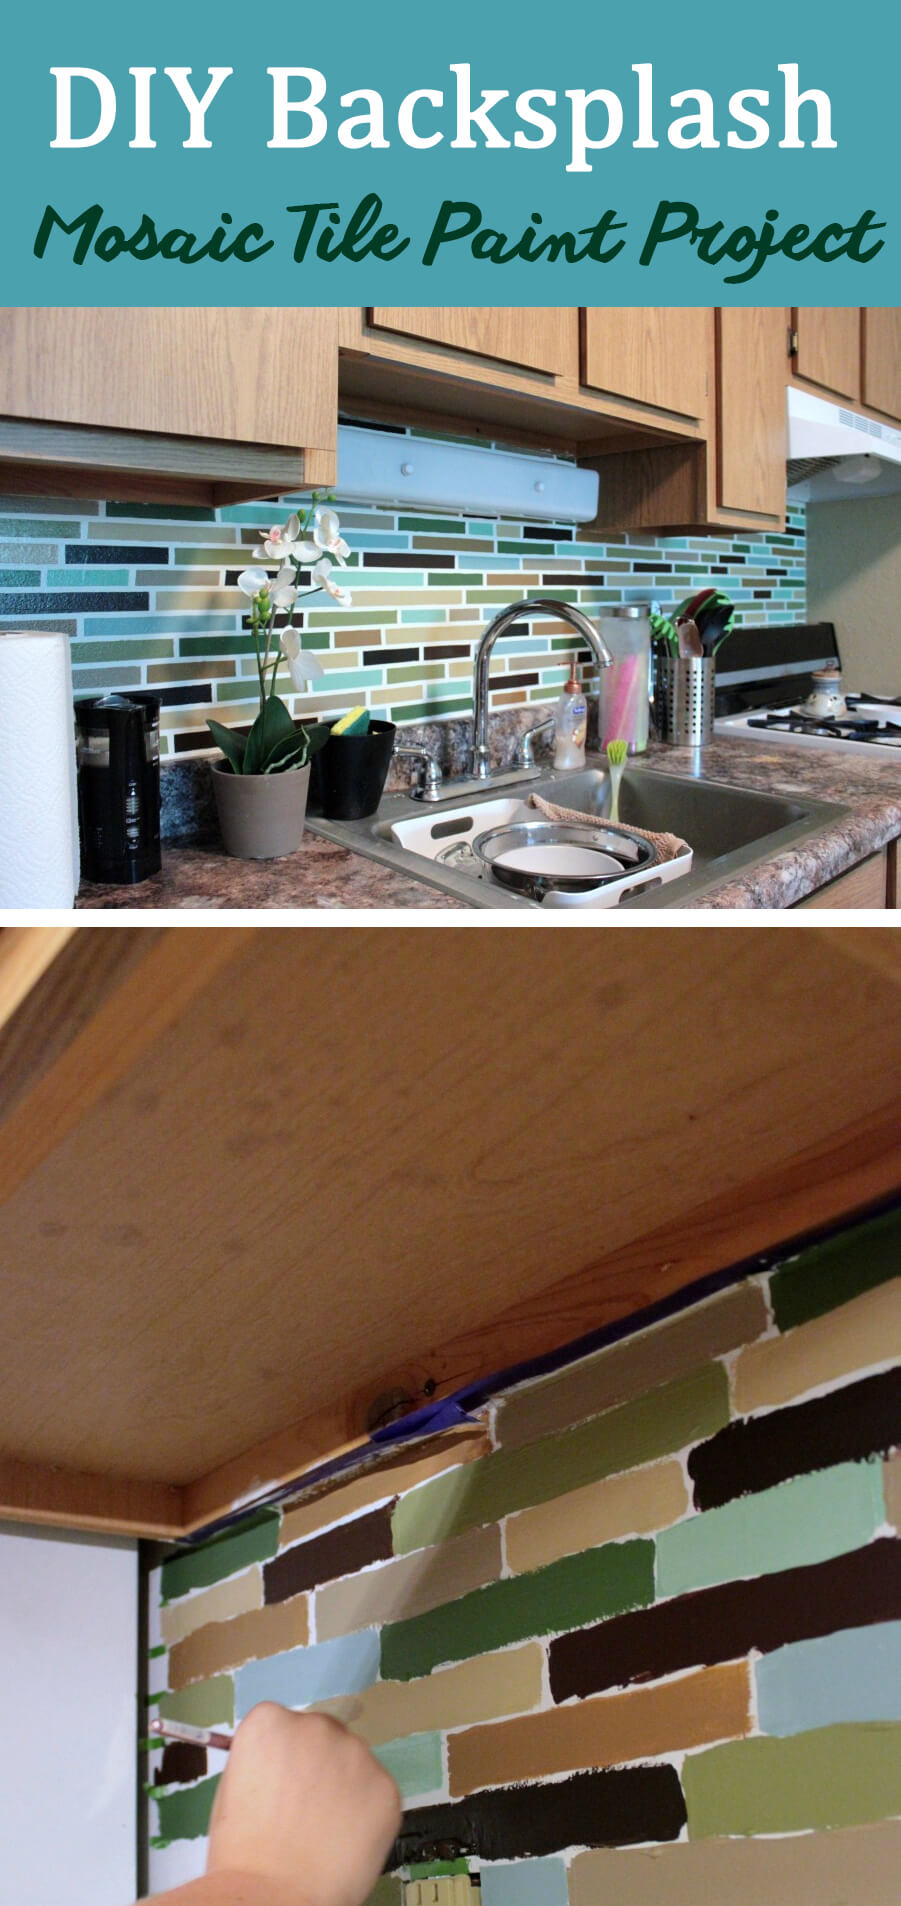 Customize Your Mosaic Backsplash with Your Color Scheme